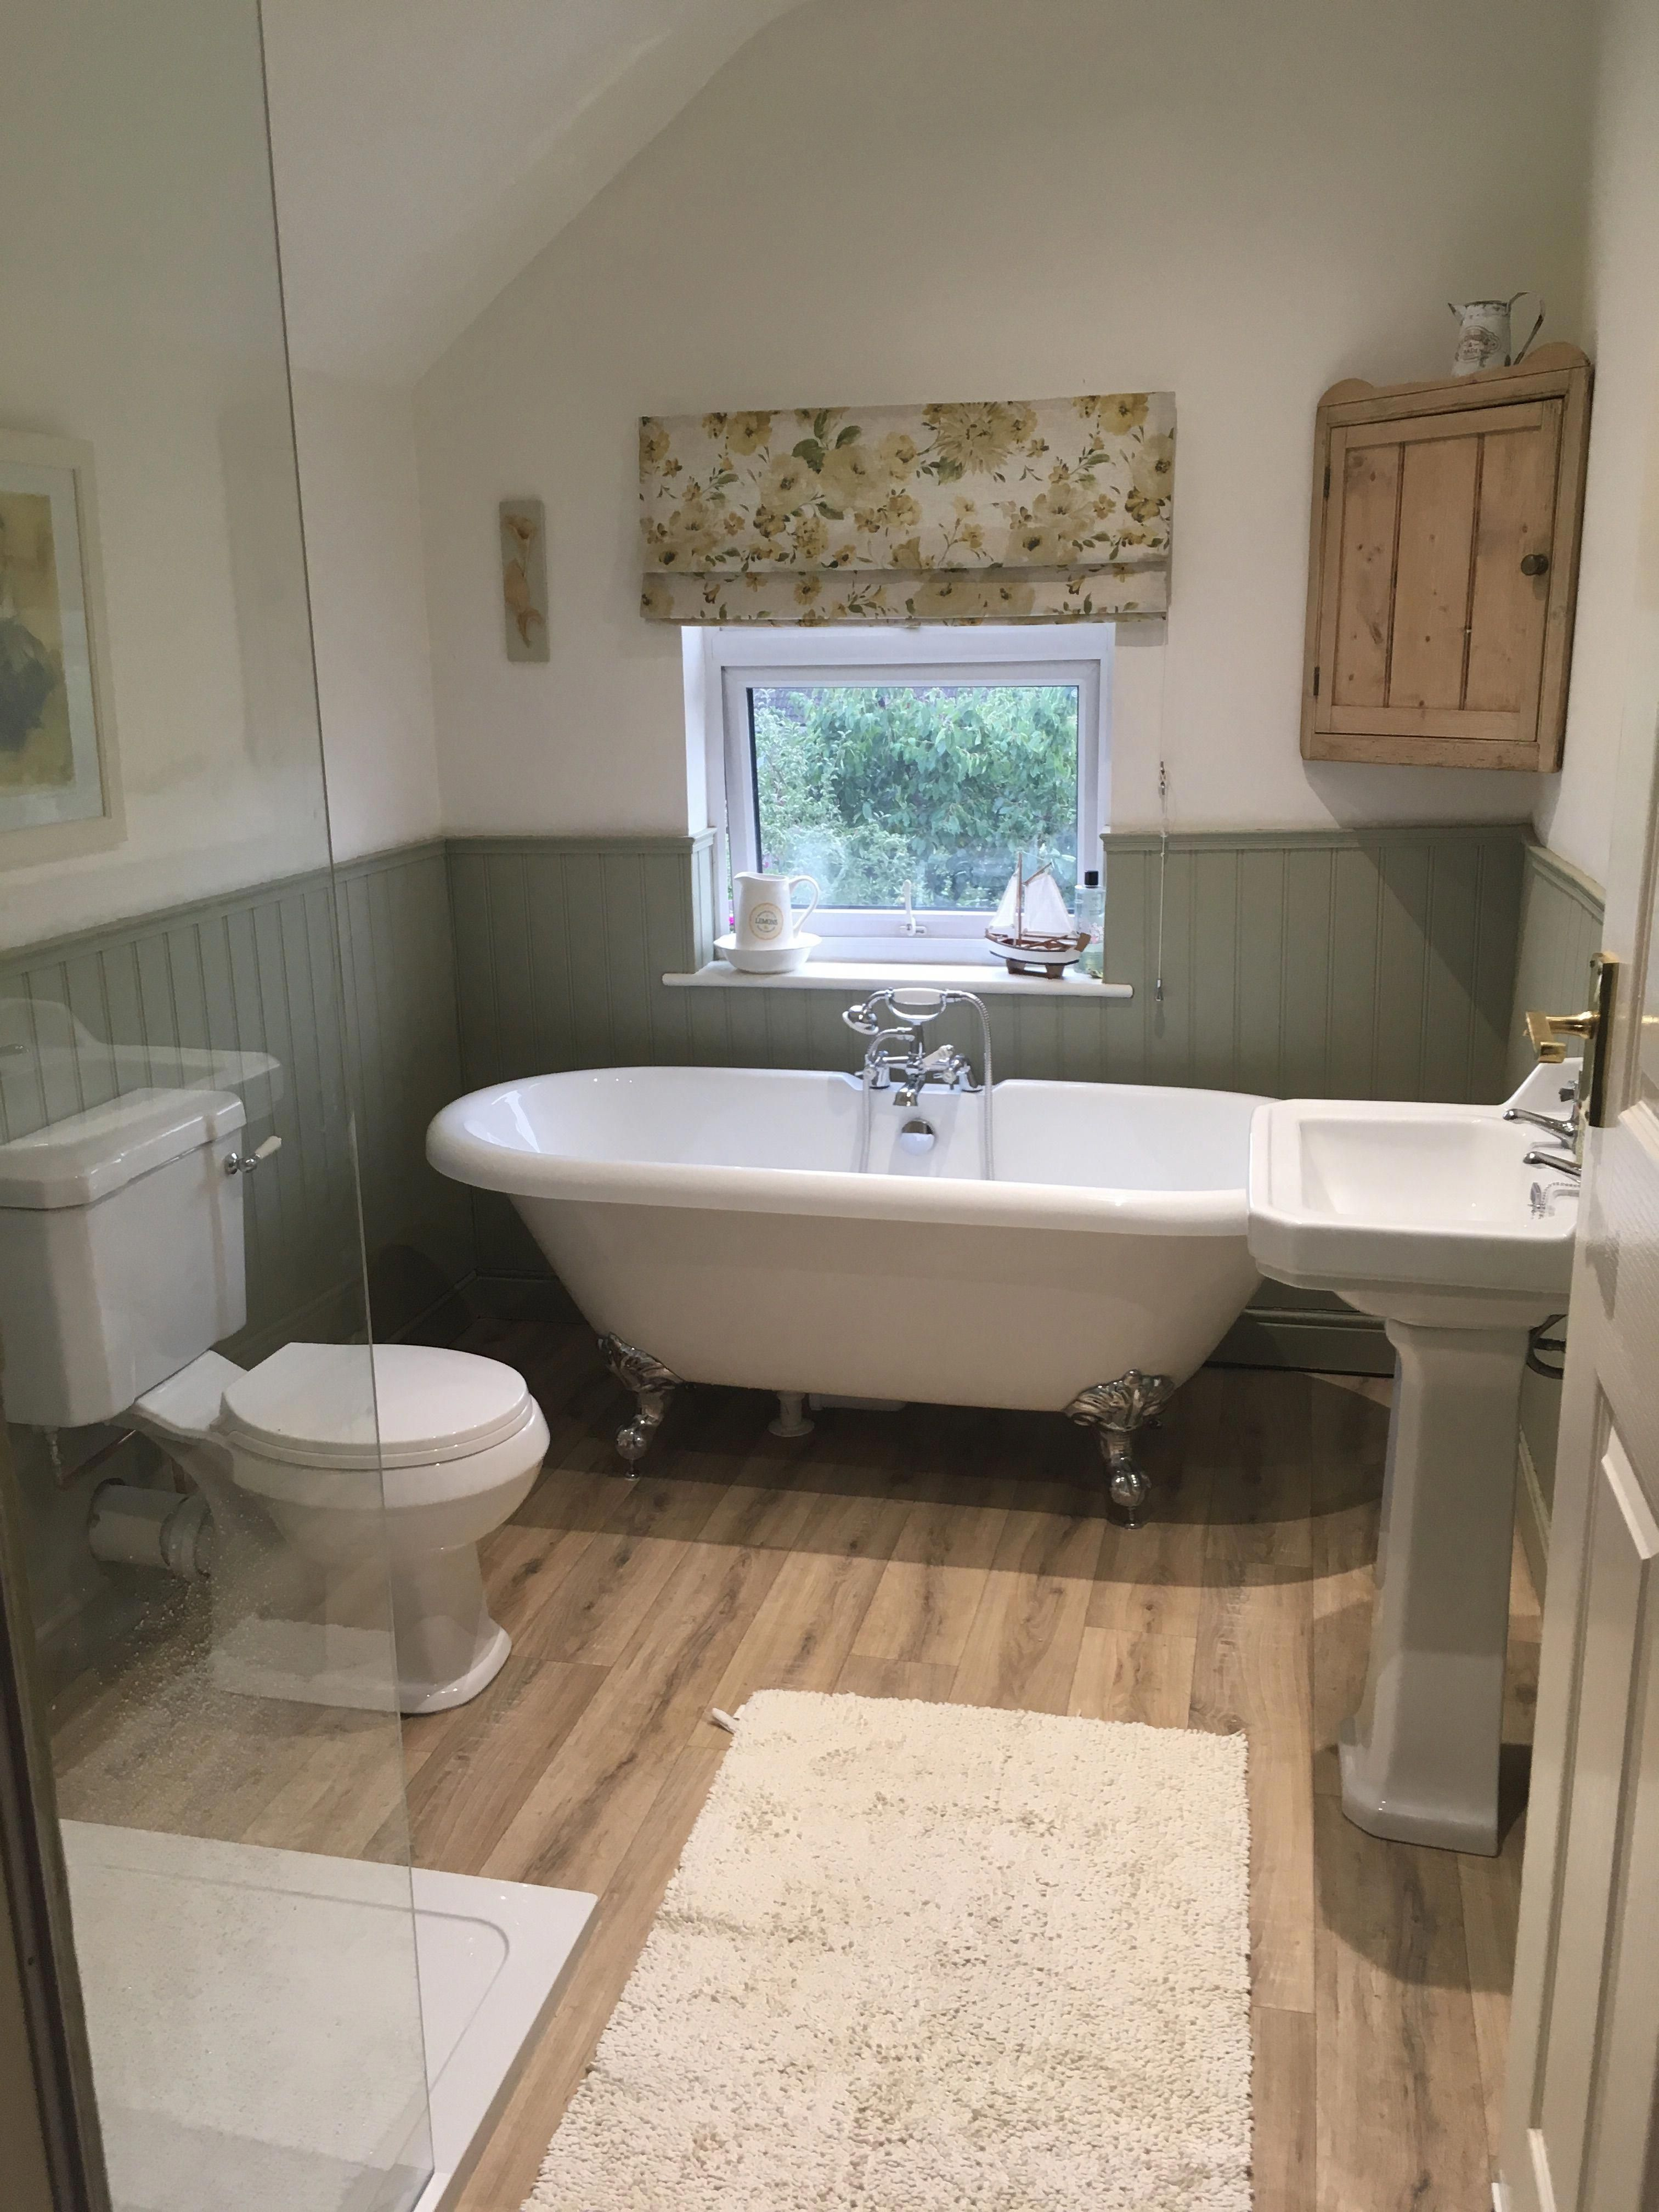 My Finished Bathroom With Tongue And Groove Panelling Finished In Farrow And Ball Fr Tongue And Groove Panelling Traditional Bathroom Bathroom Interior Design